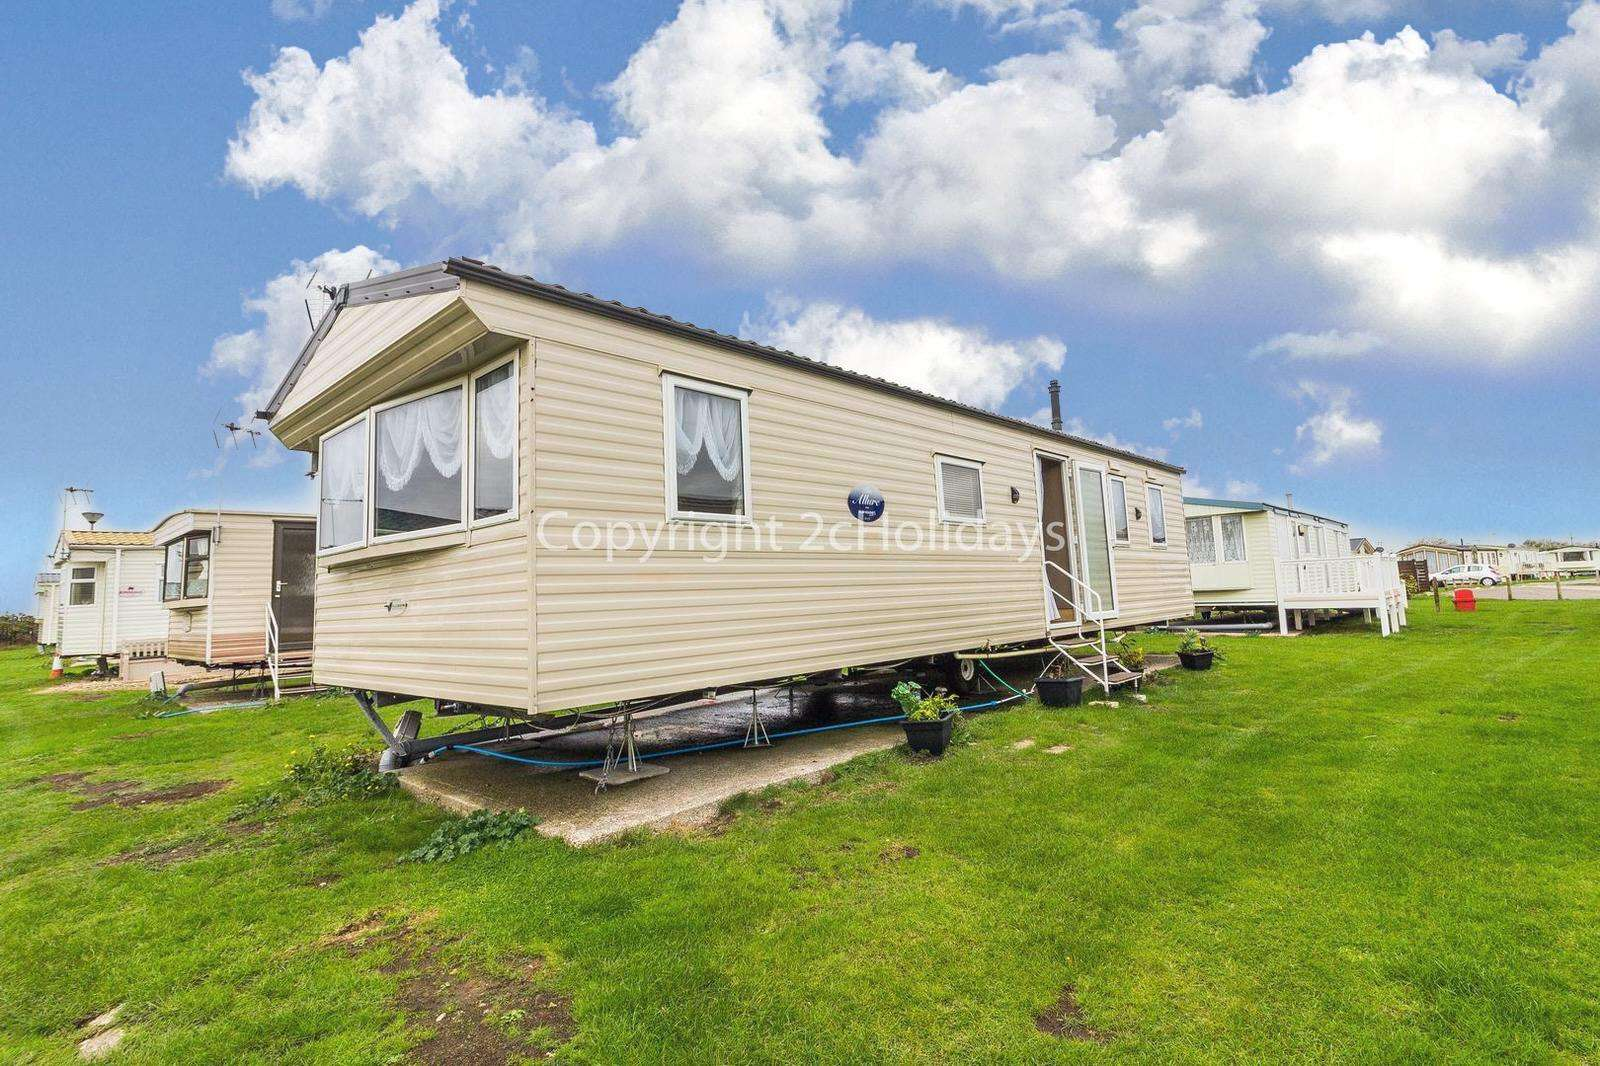 Superb caravan with homely touches.